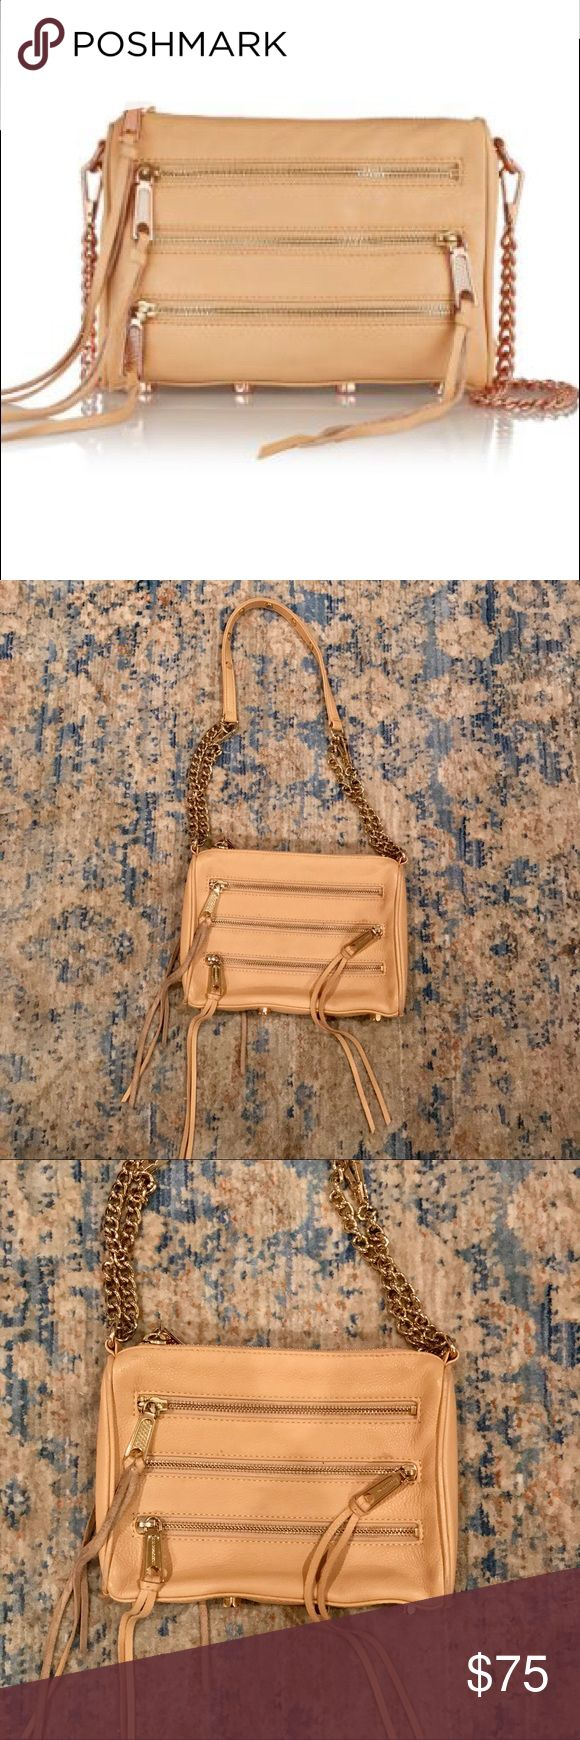 """Rebecca Minkoff Purse Rebecca Minkoff """"mini 5 zip"""" purse -- tan color. In good used condition. Only noticeable on inside, still has a lot of life left, as you can see from the outside. Can be worn with the chain long or doubled to make it shorter. Doesn't come with dust bag ❌ no trades Rebecca Minkoff Bags Crossbody Bags"""